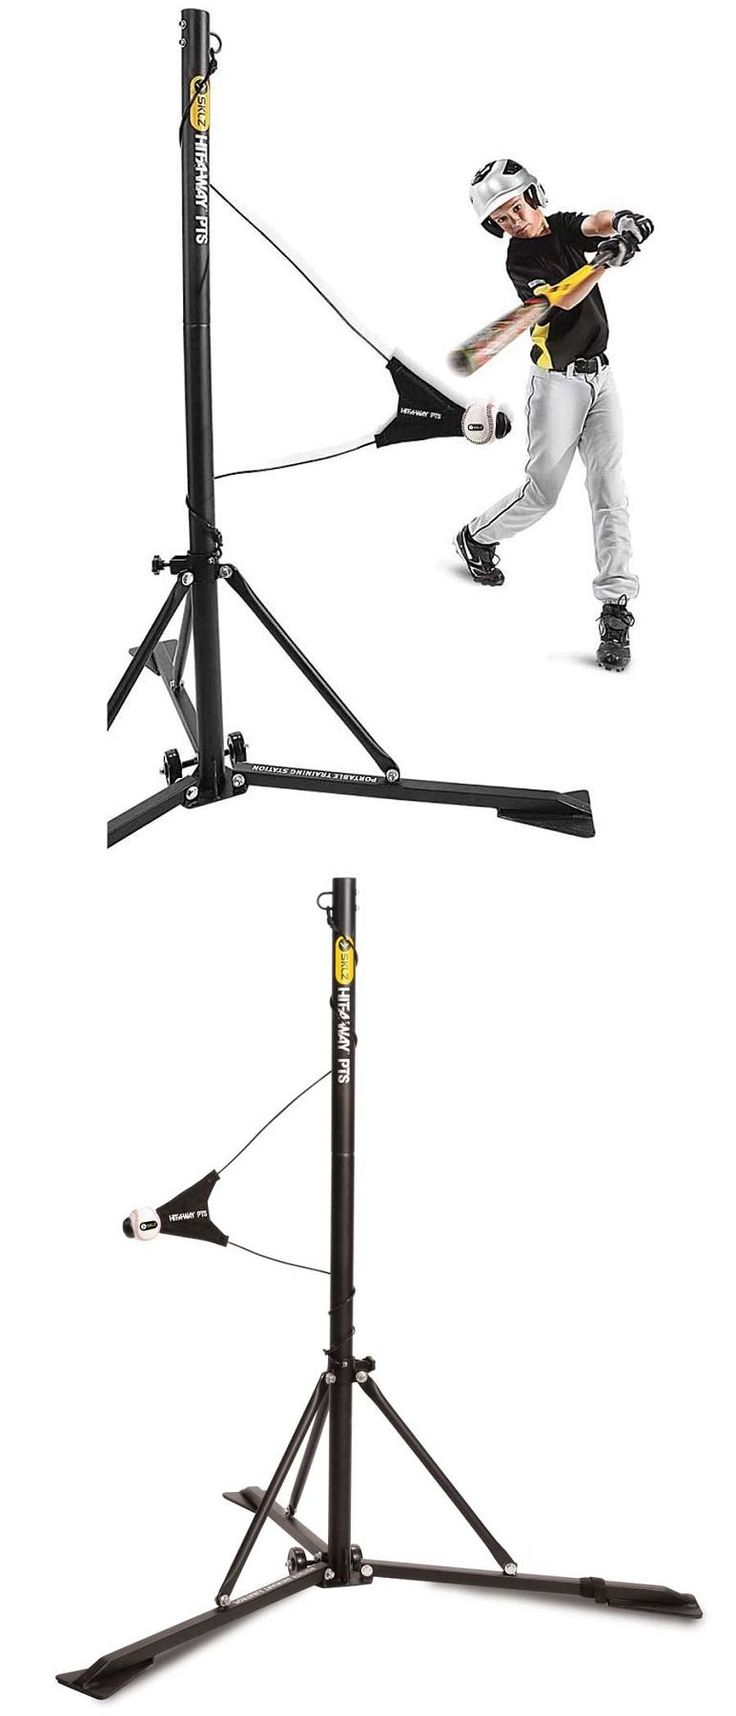 39244 best discount softball pitching machines images on pinterest other baseball training aids 181332 sklz hit a way pts portable baseball batting pooptronica Gallery